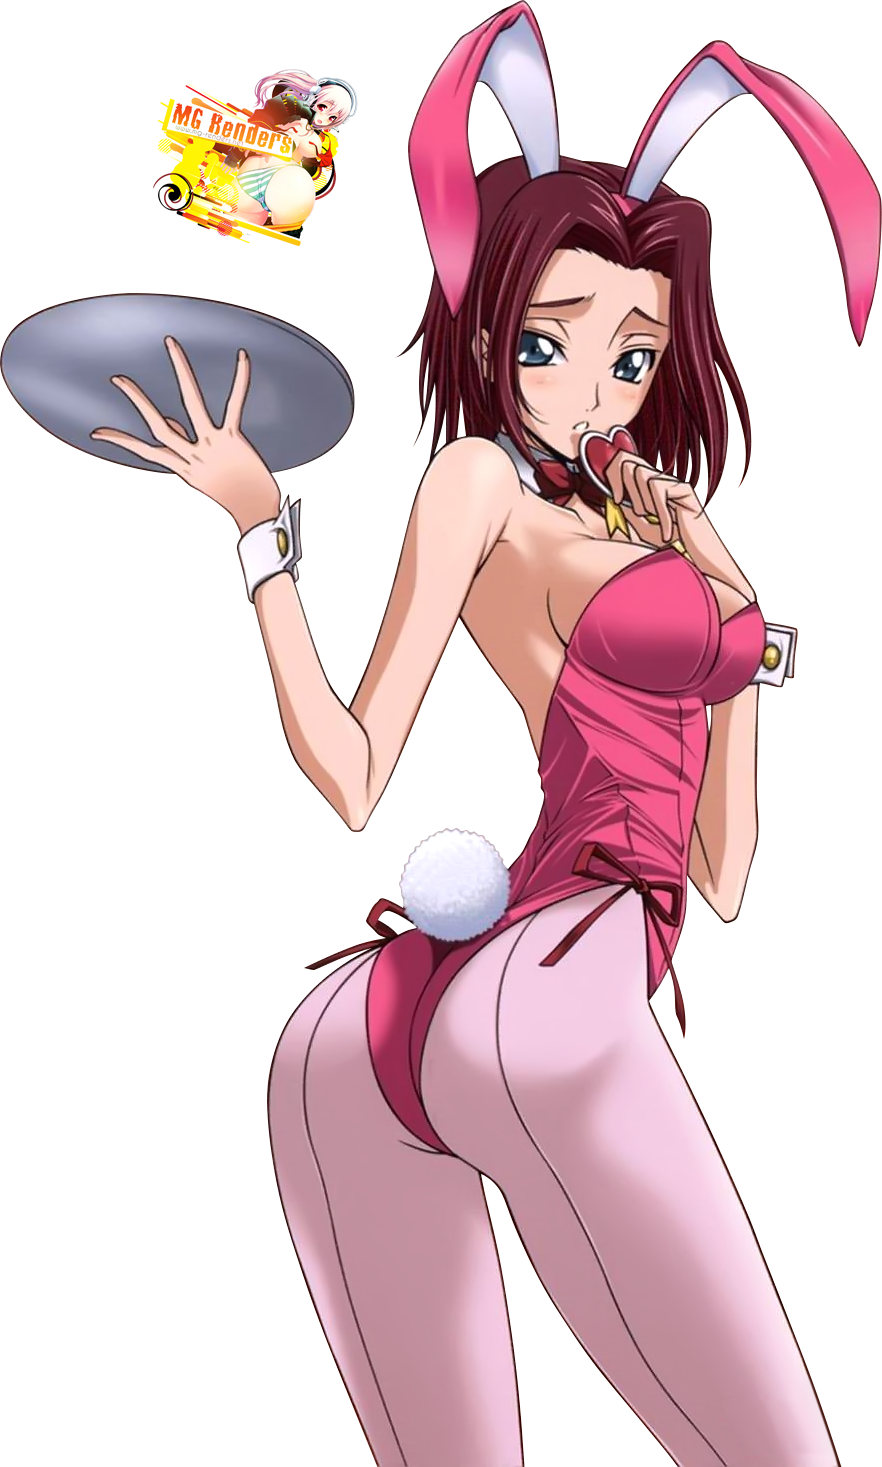 Code Geass Kallen Sex Scandal 21